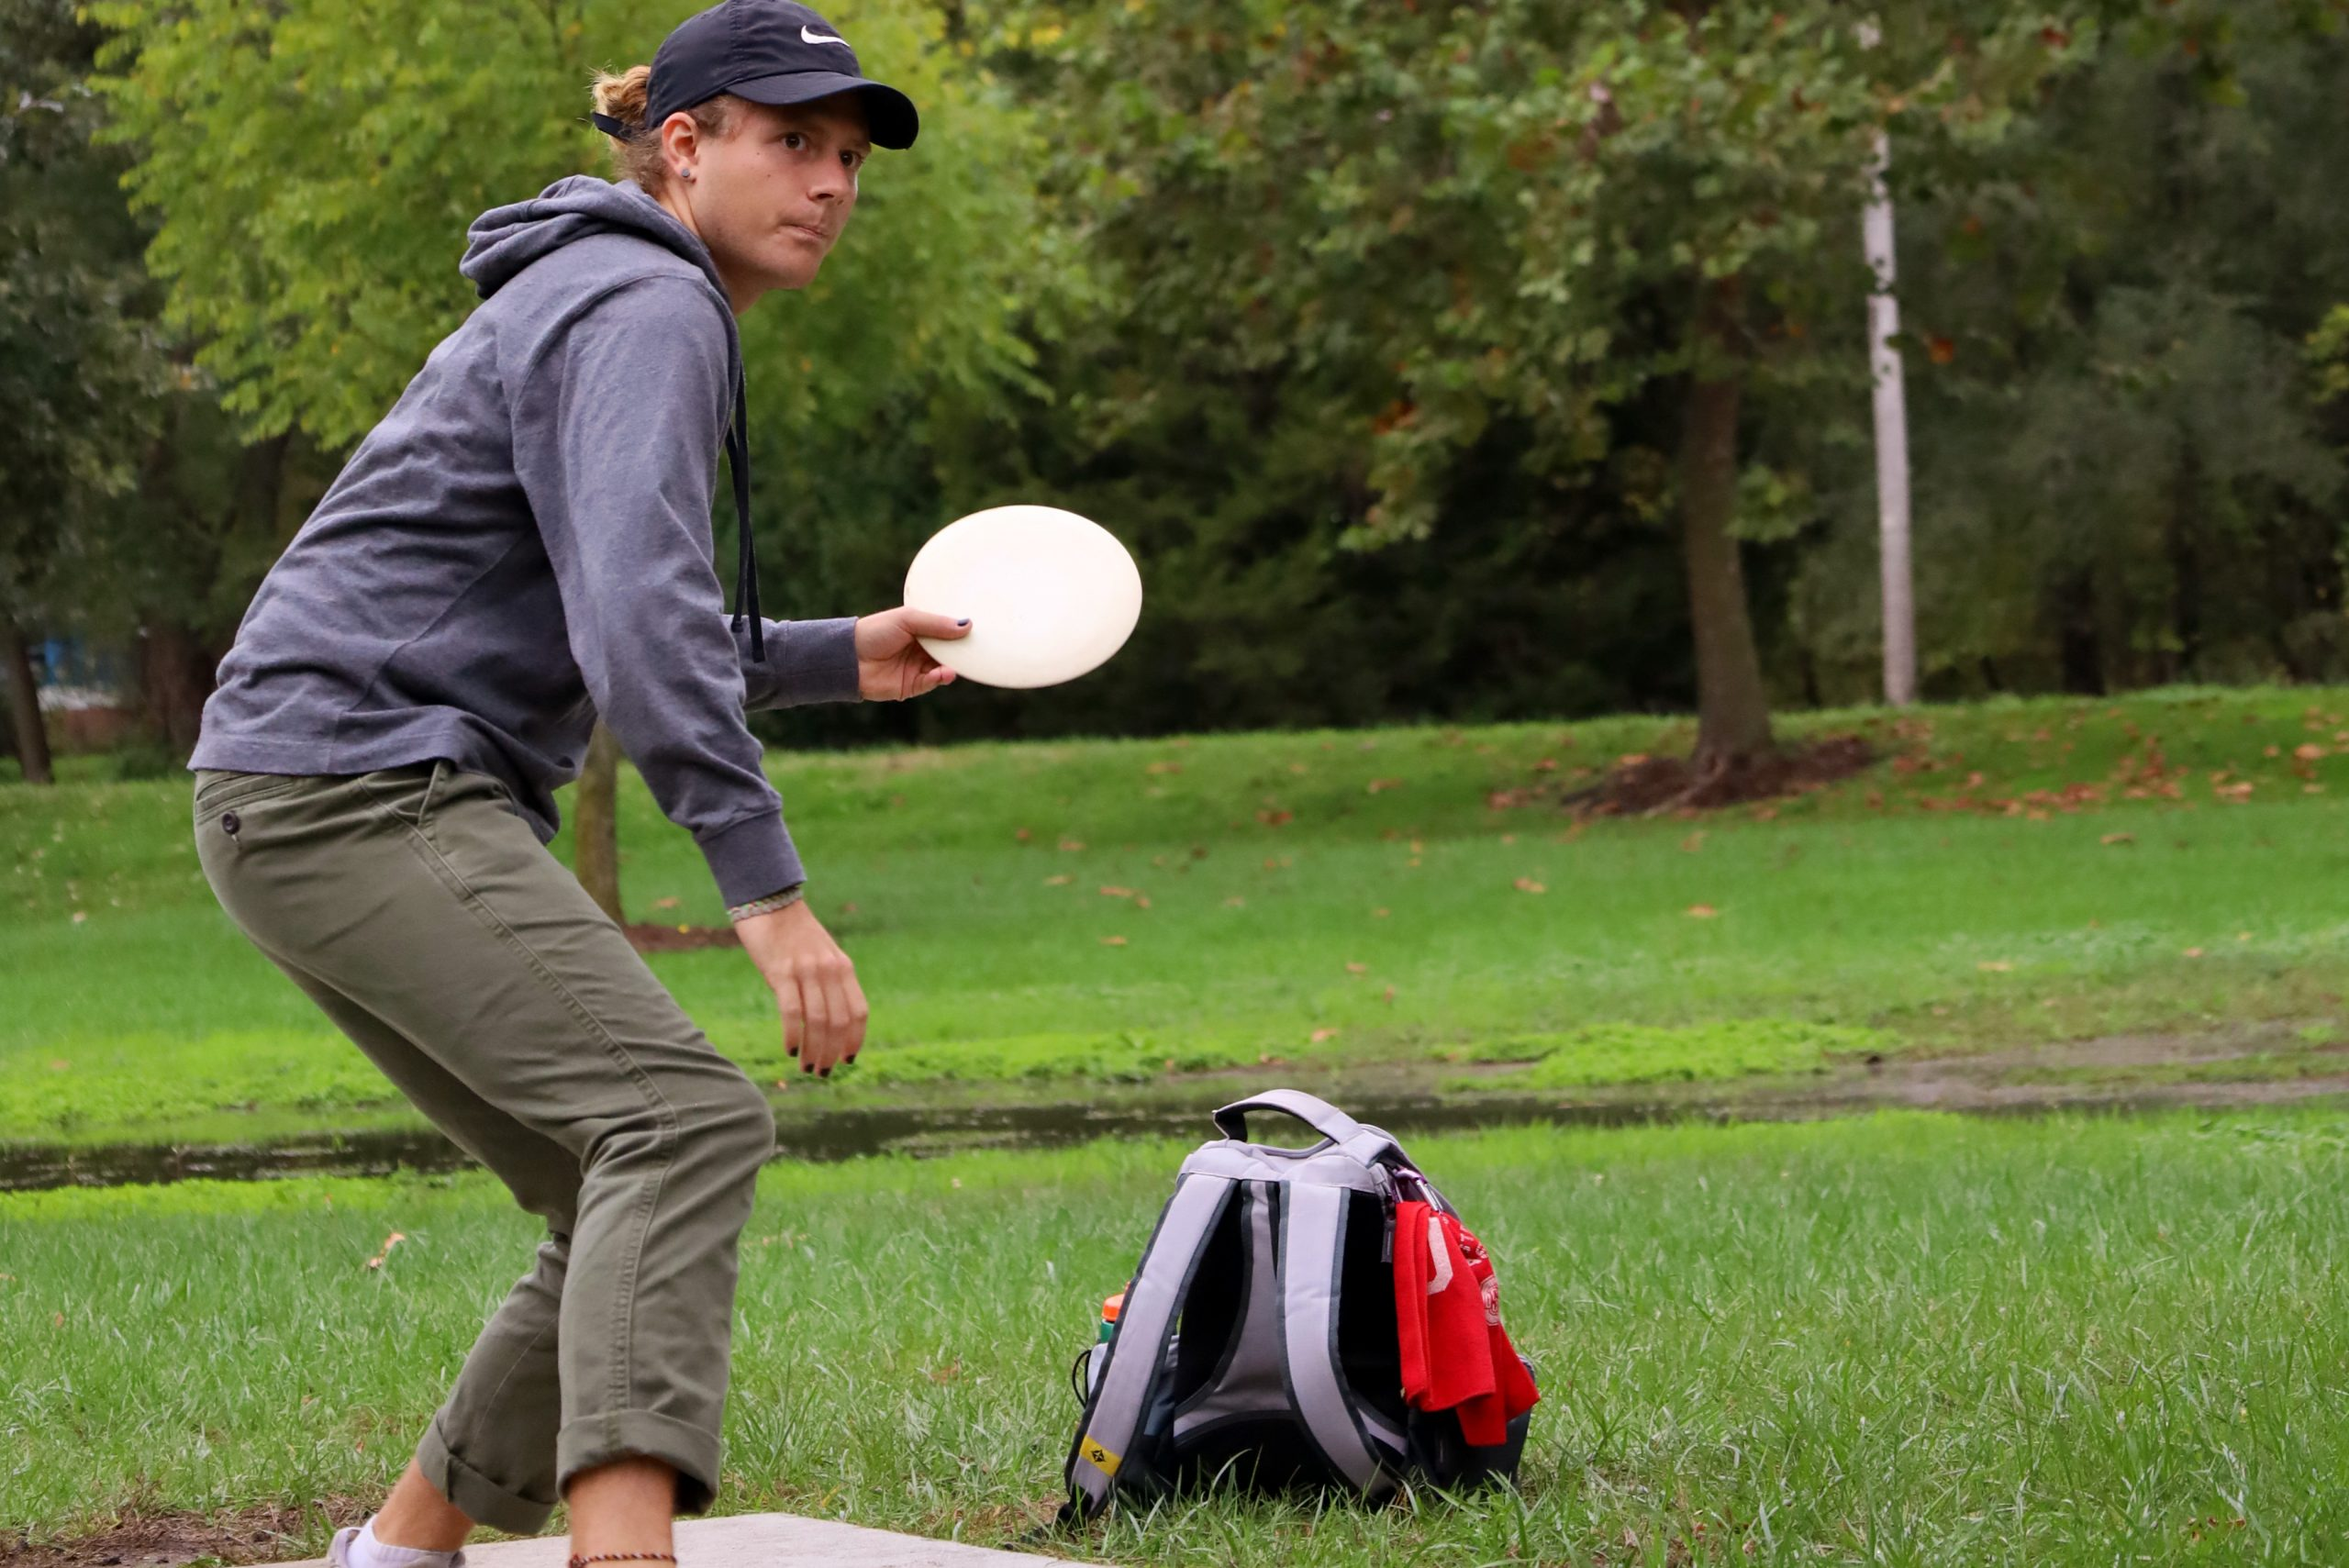 Tanner Pinks throwing a disc